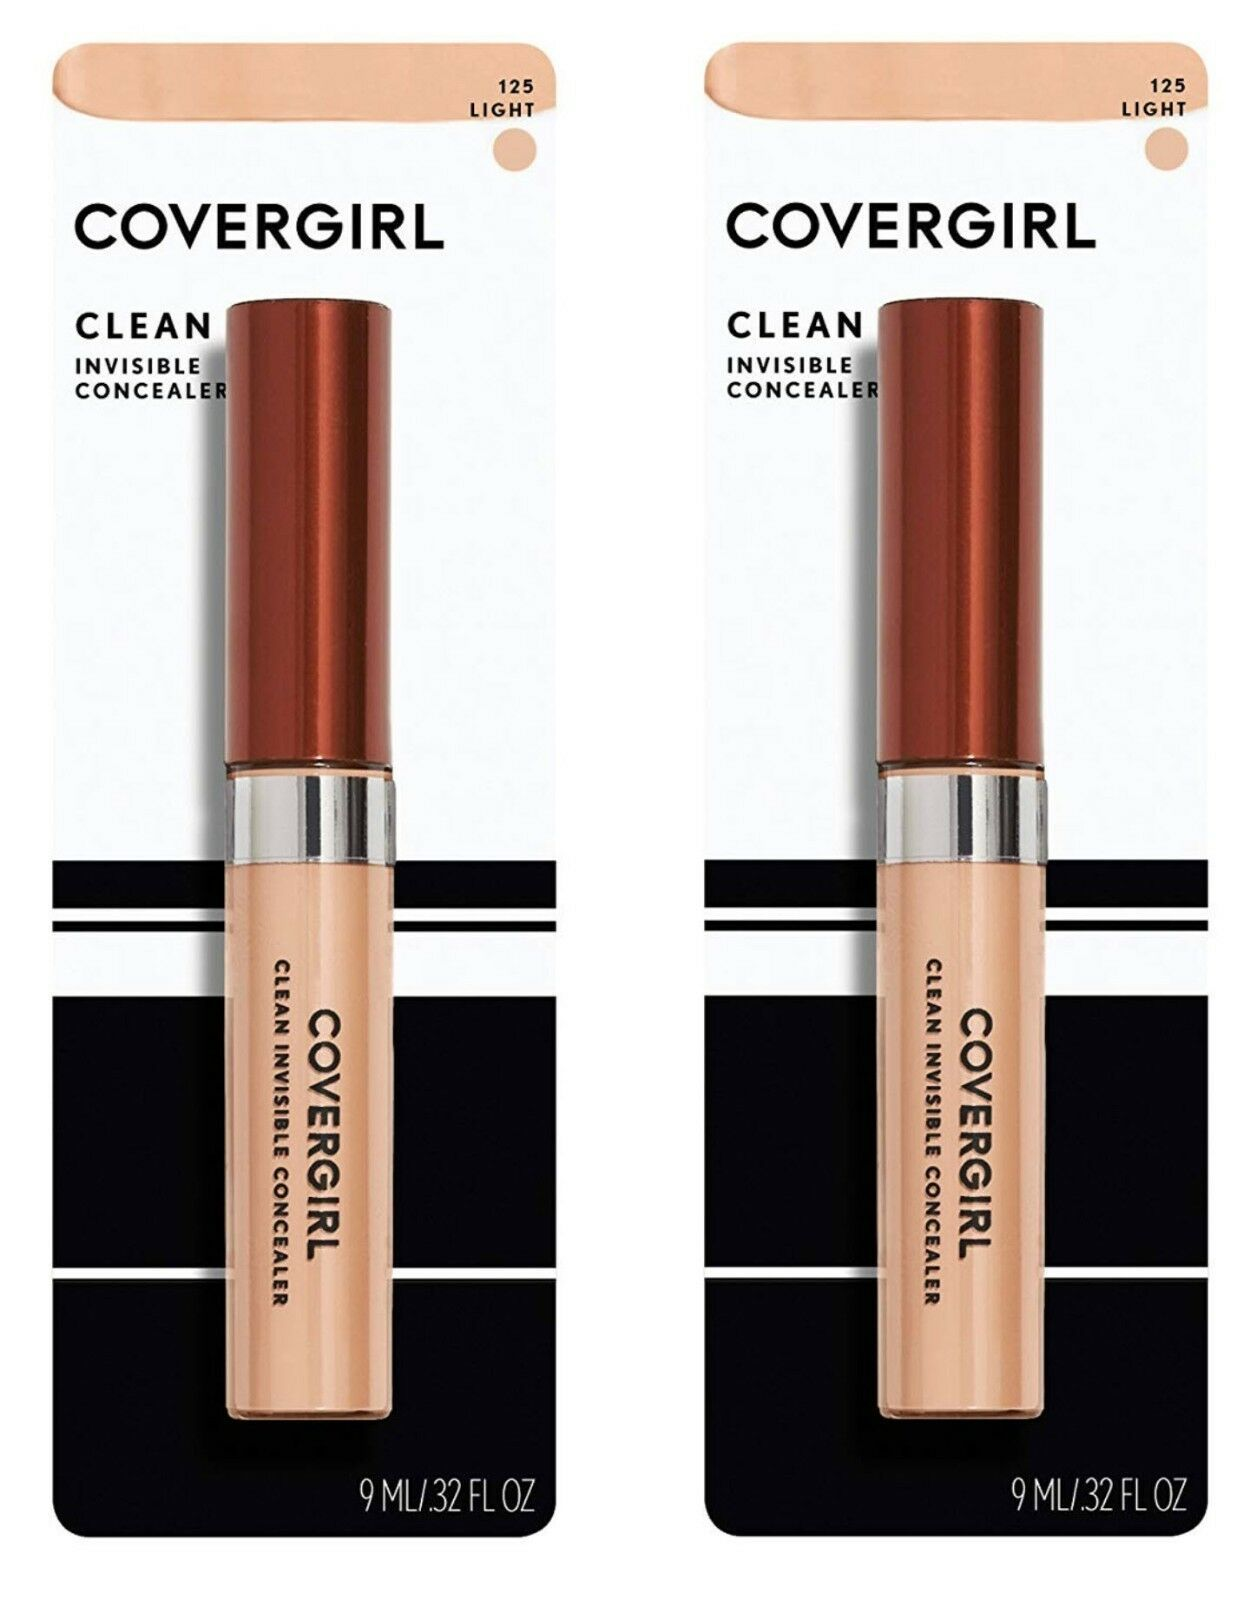 2 Pack - CoverGirl Invisible Concealer - 125 Light - $7.79